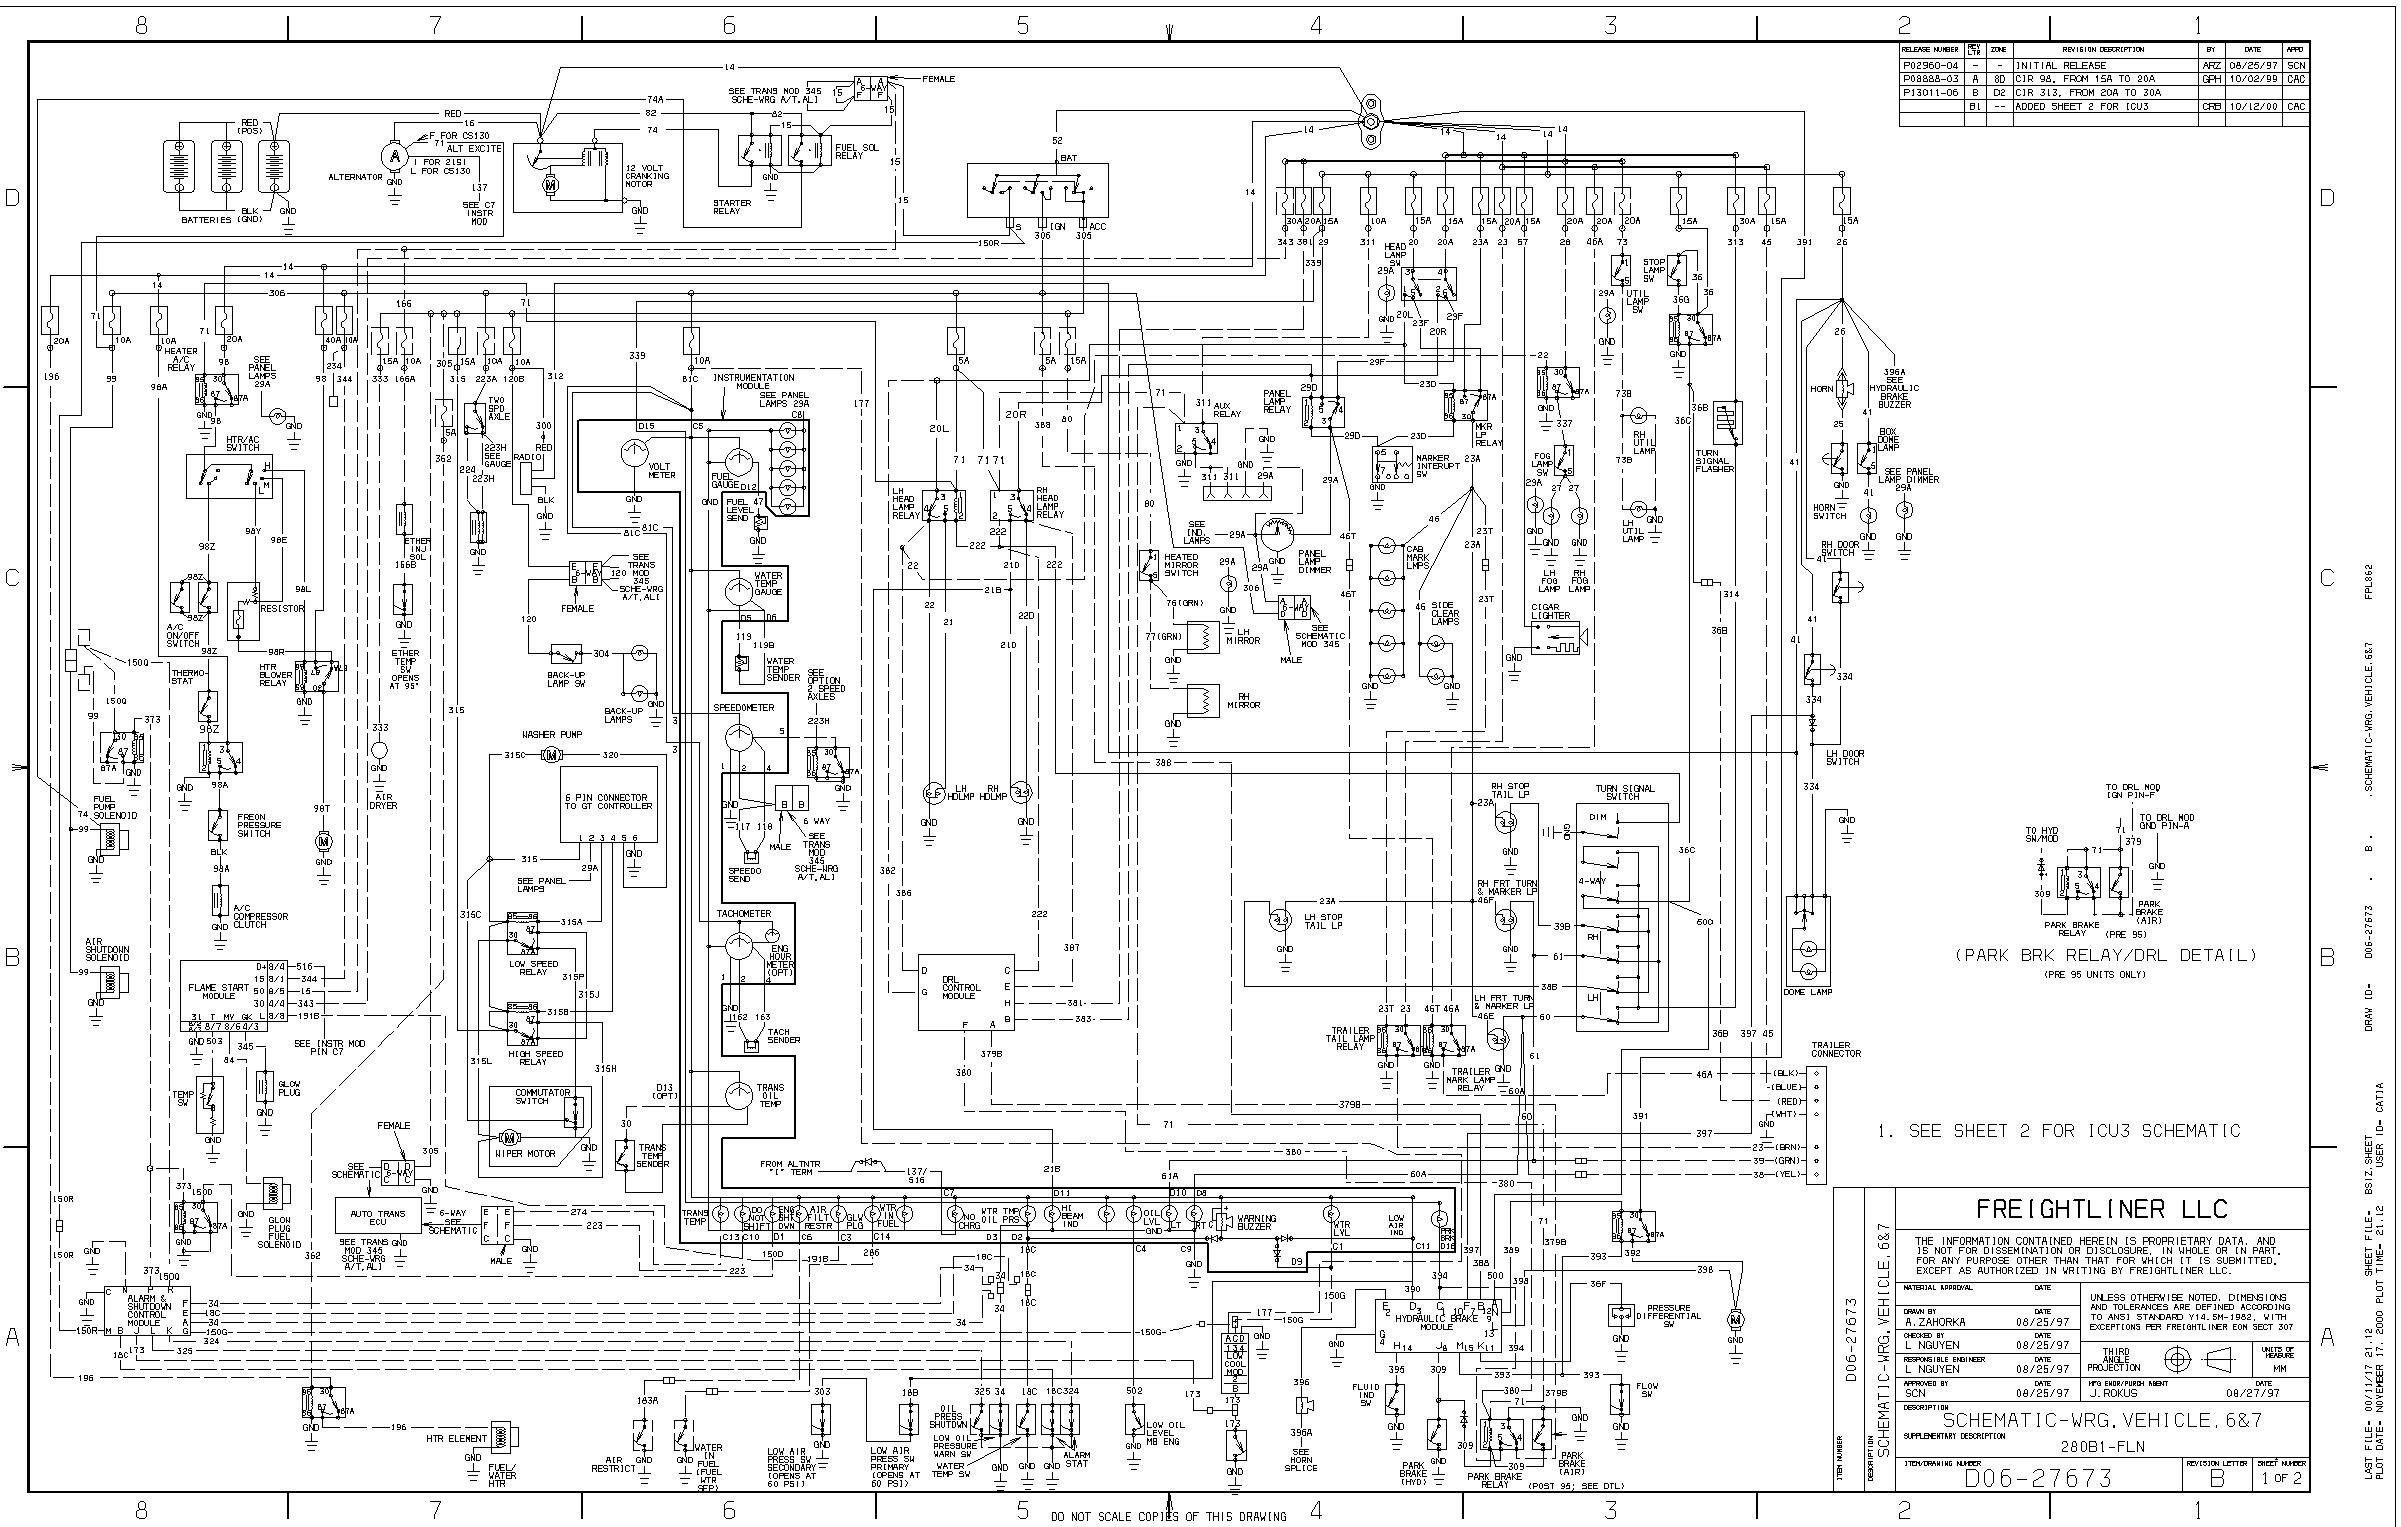 1990 Kenworth T600 Wiring Diagram | Wiring Diagram on kenworth w900 fuse box, kenworth t370 fuse box, kenworth t2000 fuse box, international 4900 fuse box, kenworth t800 fuse box, freightliner cascadia fuse box,